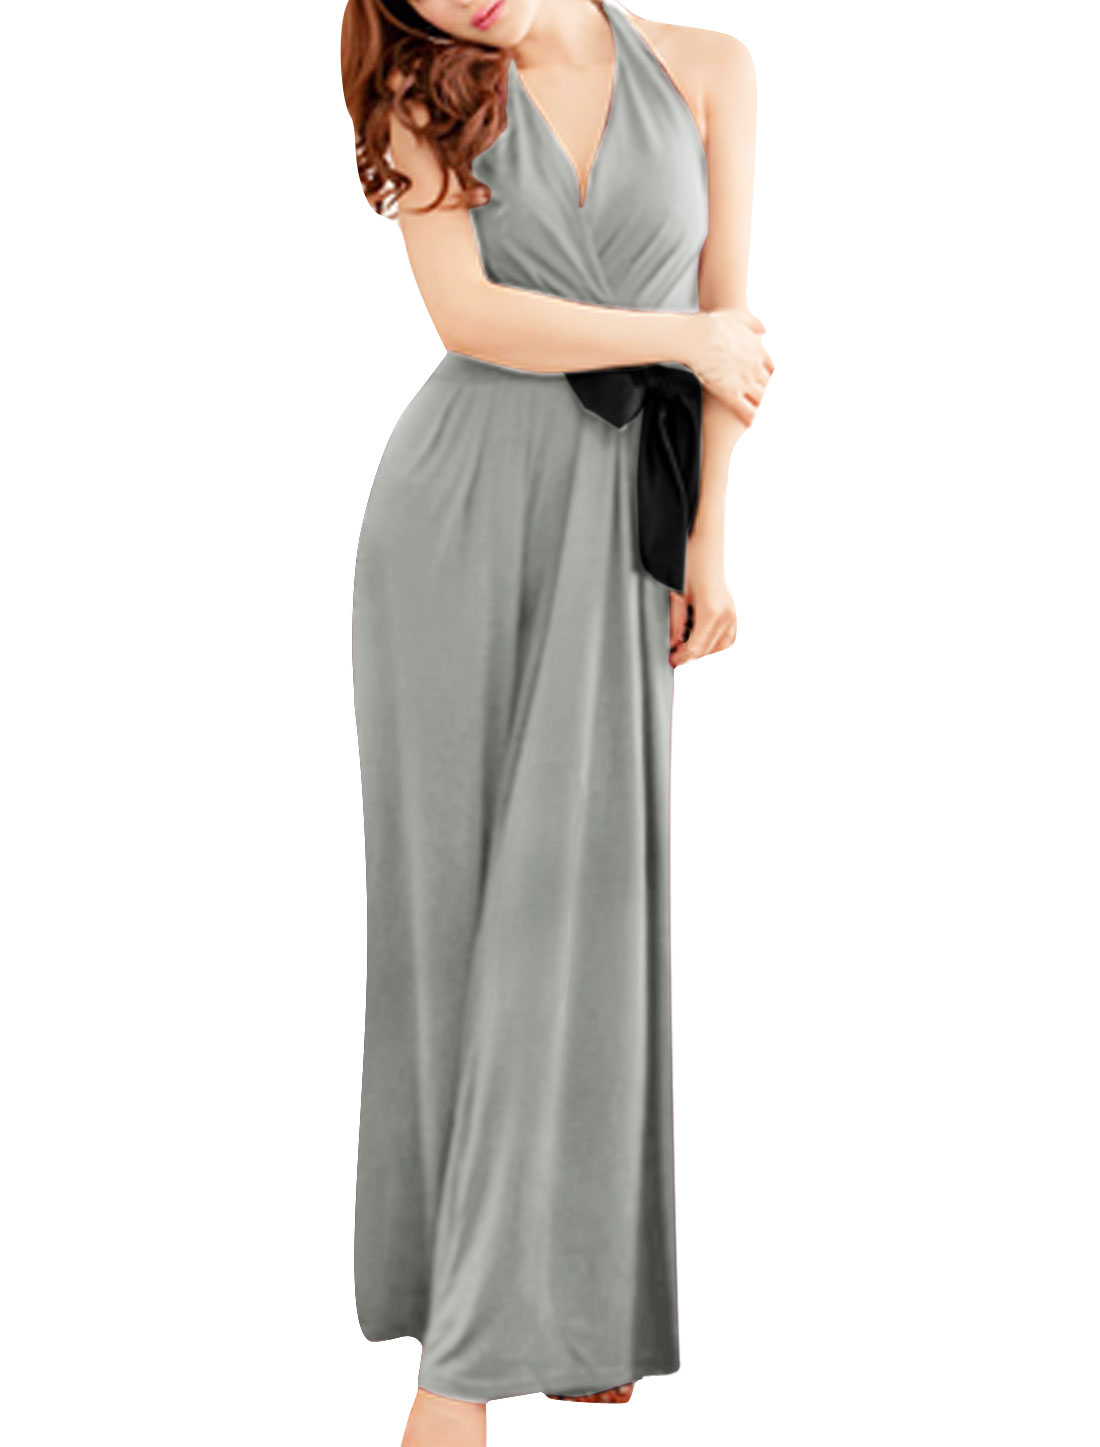 Ladies Chic Cross V Neck Halter Neck Design Light Gray Jumpsuit XS